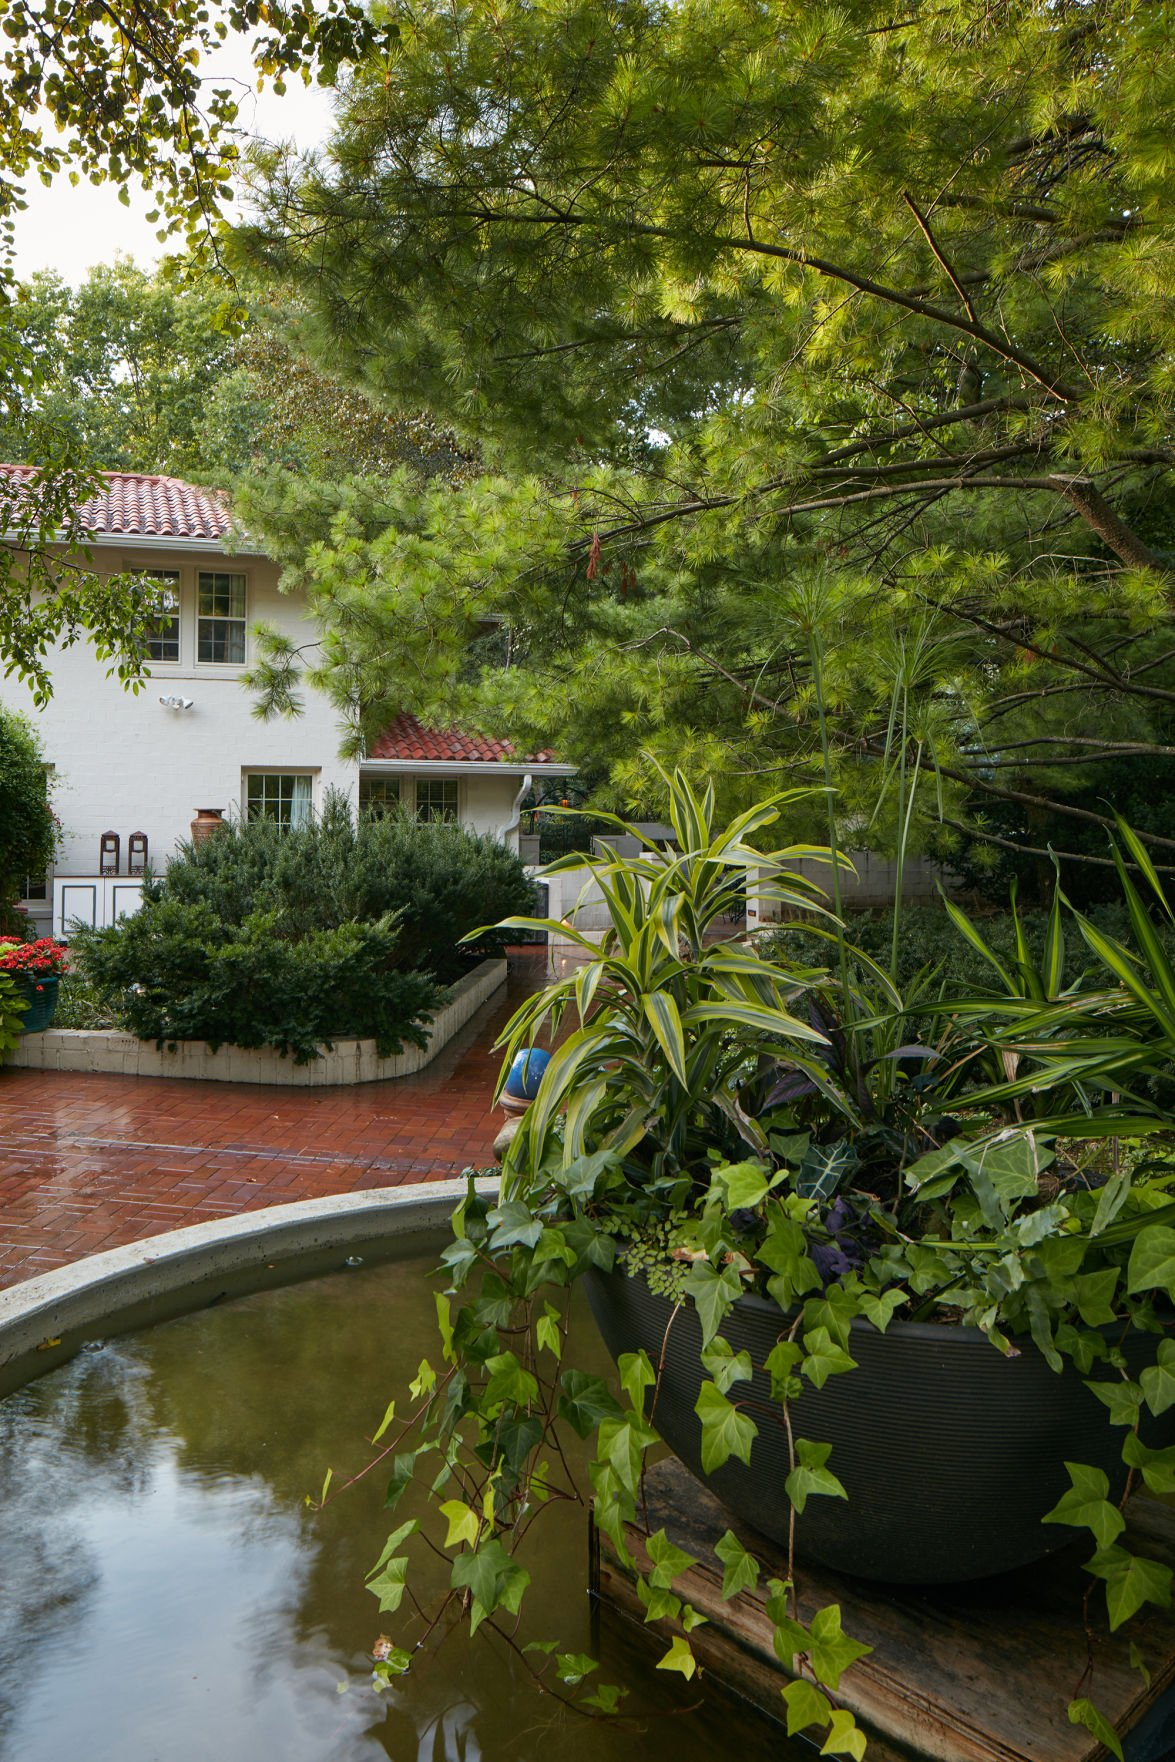 Influence of monet trips to spain mexico add for Garden reflecting pool